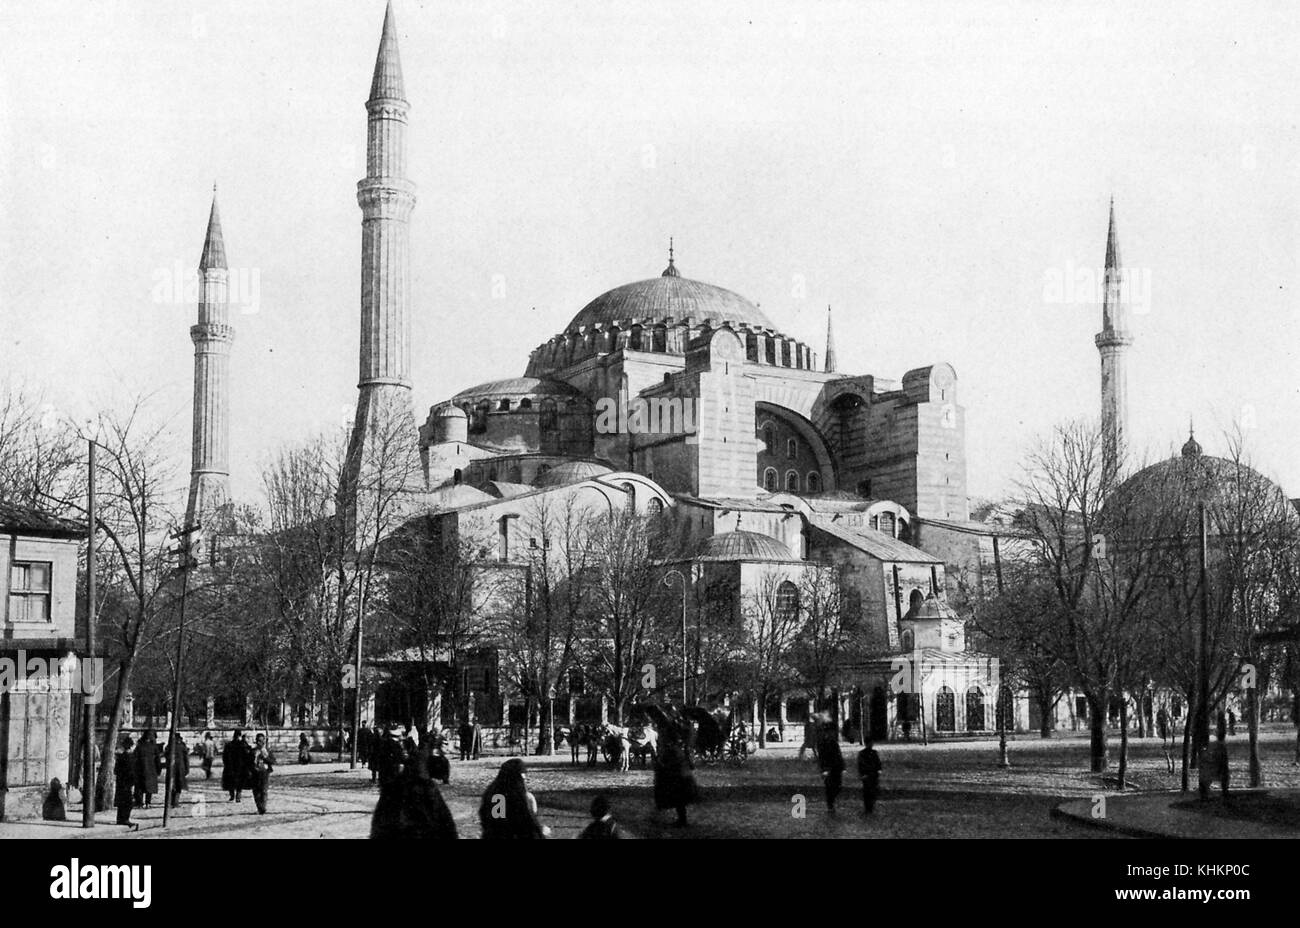 View of Hagia Sofia Basilica, in Turkey, founded in 532 by Justinian the Great, Turkey, July, 1922. - Stock Image